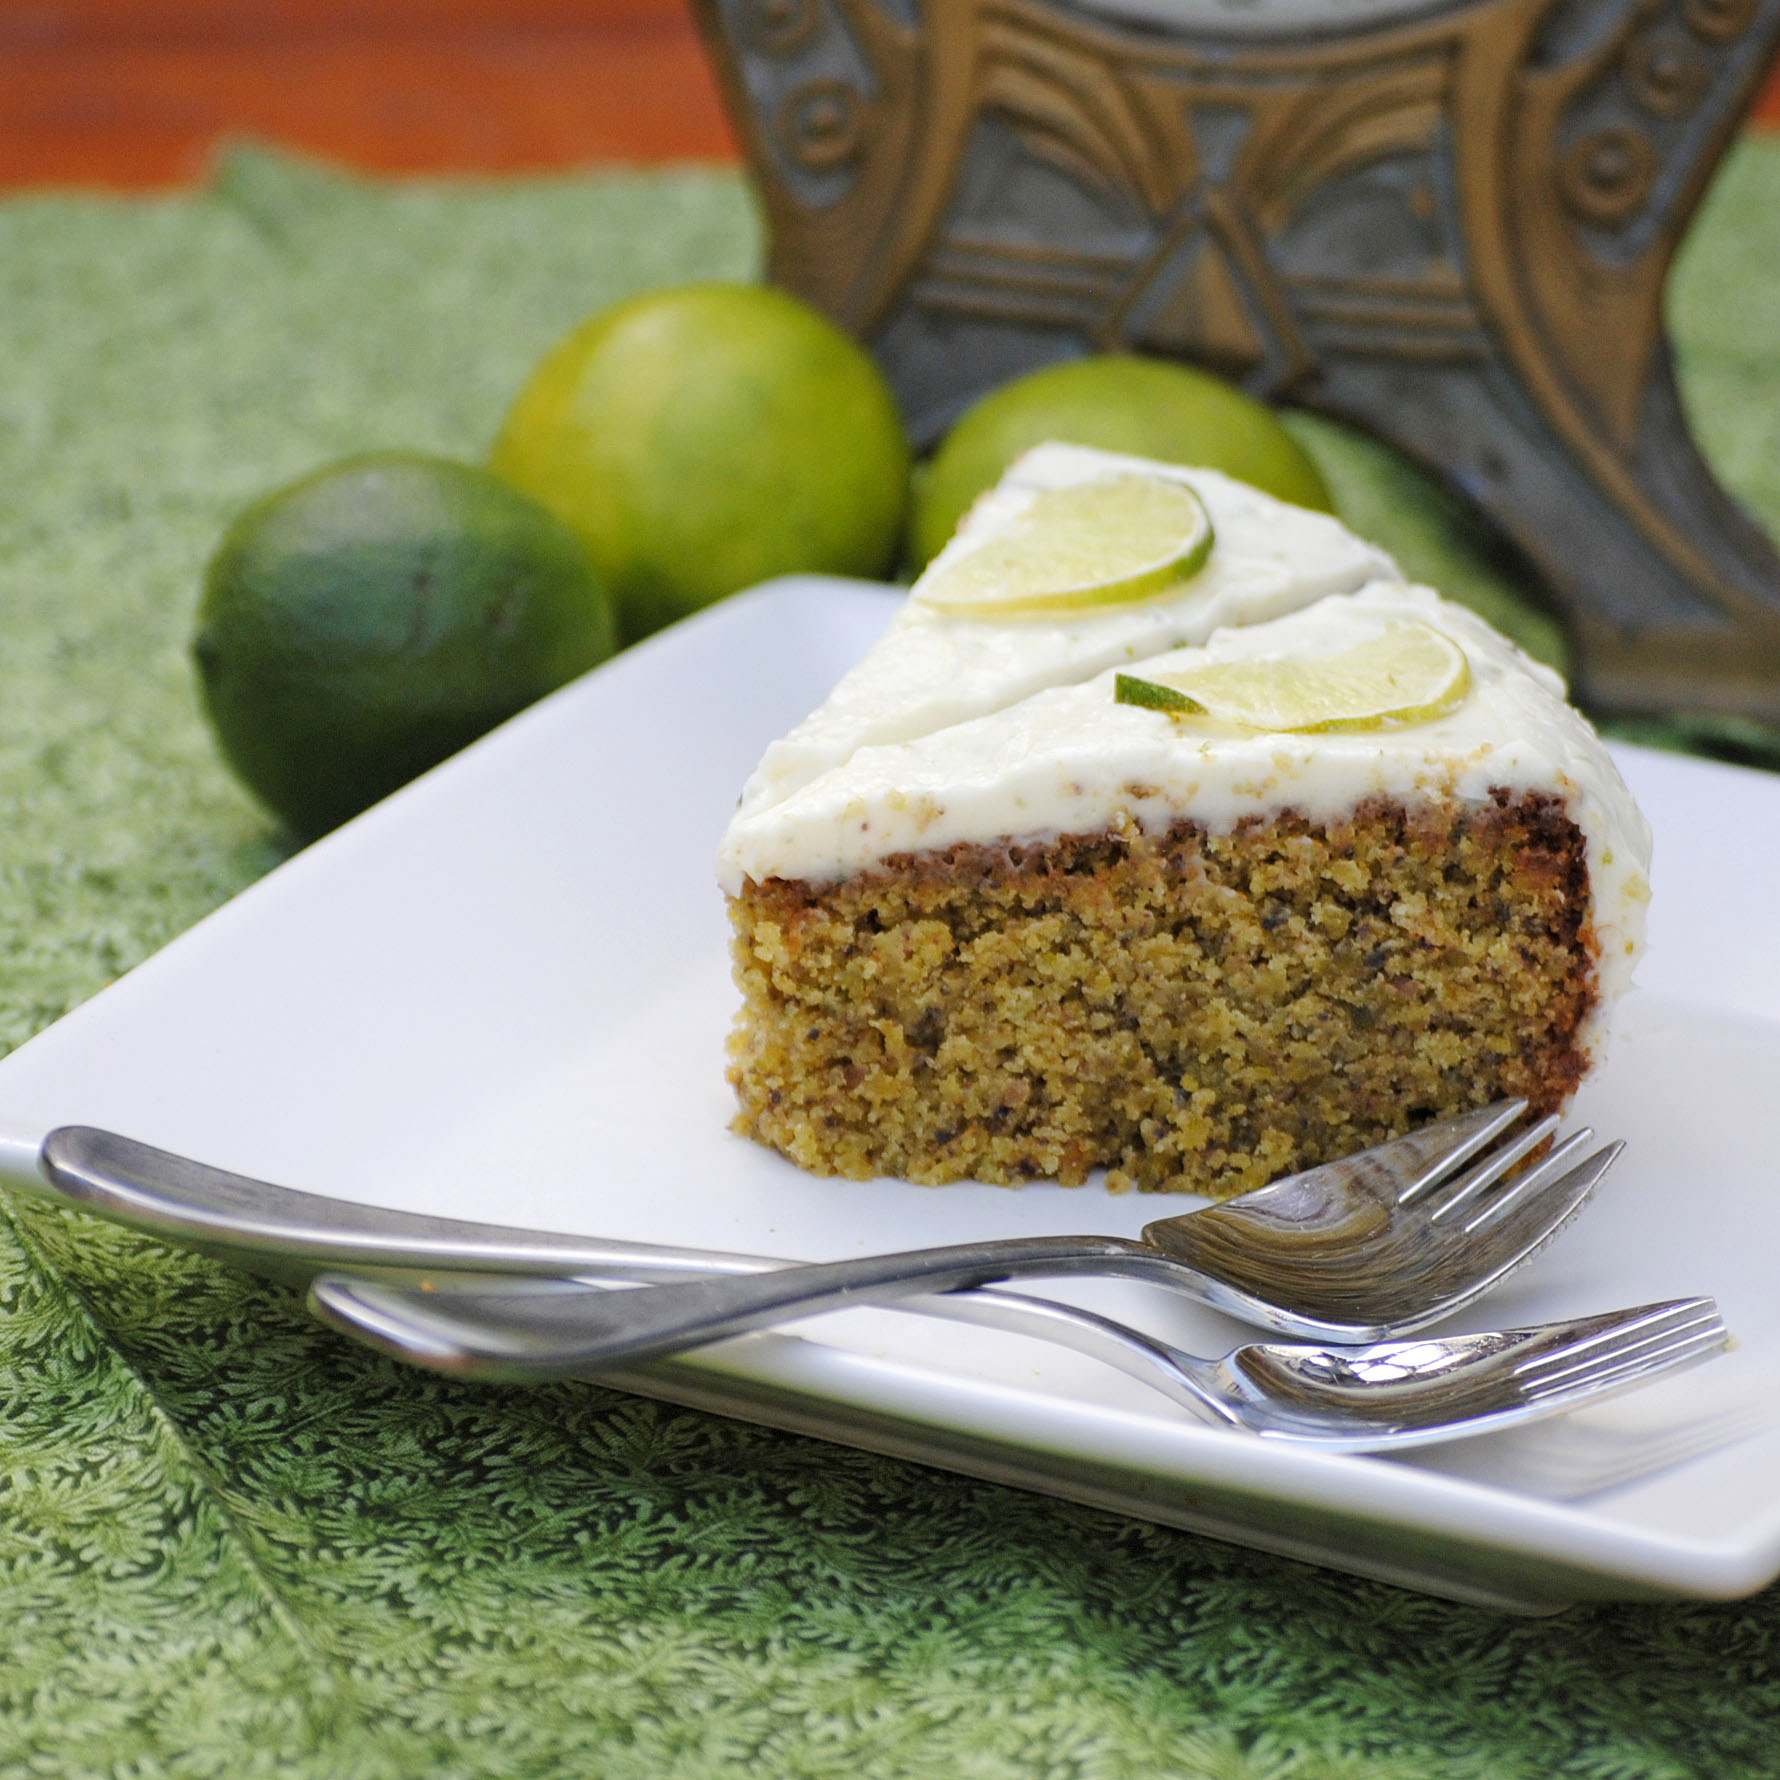 Flourless lime and pistachio cake